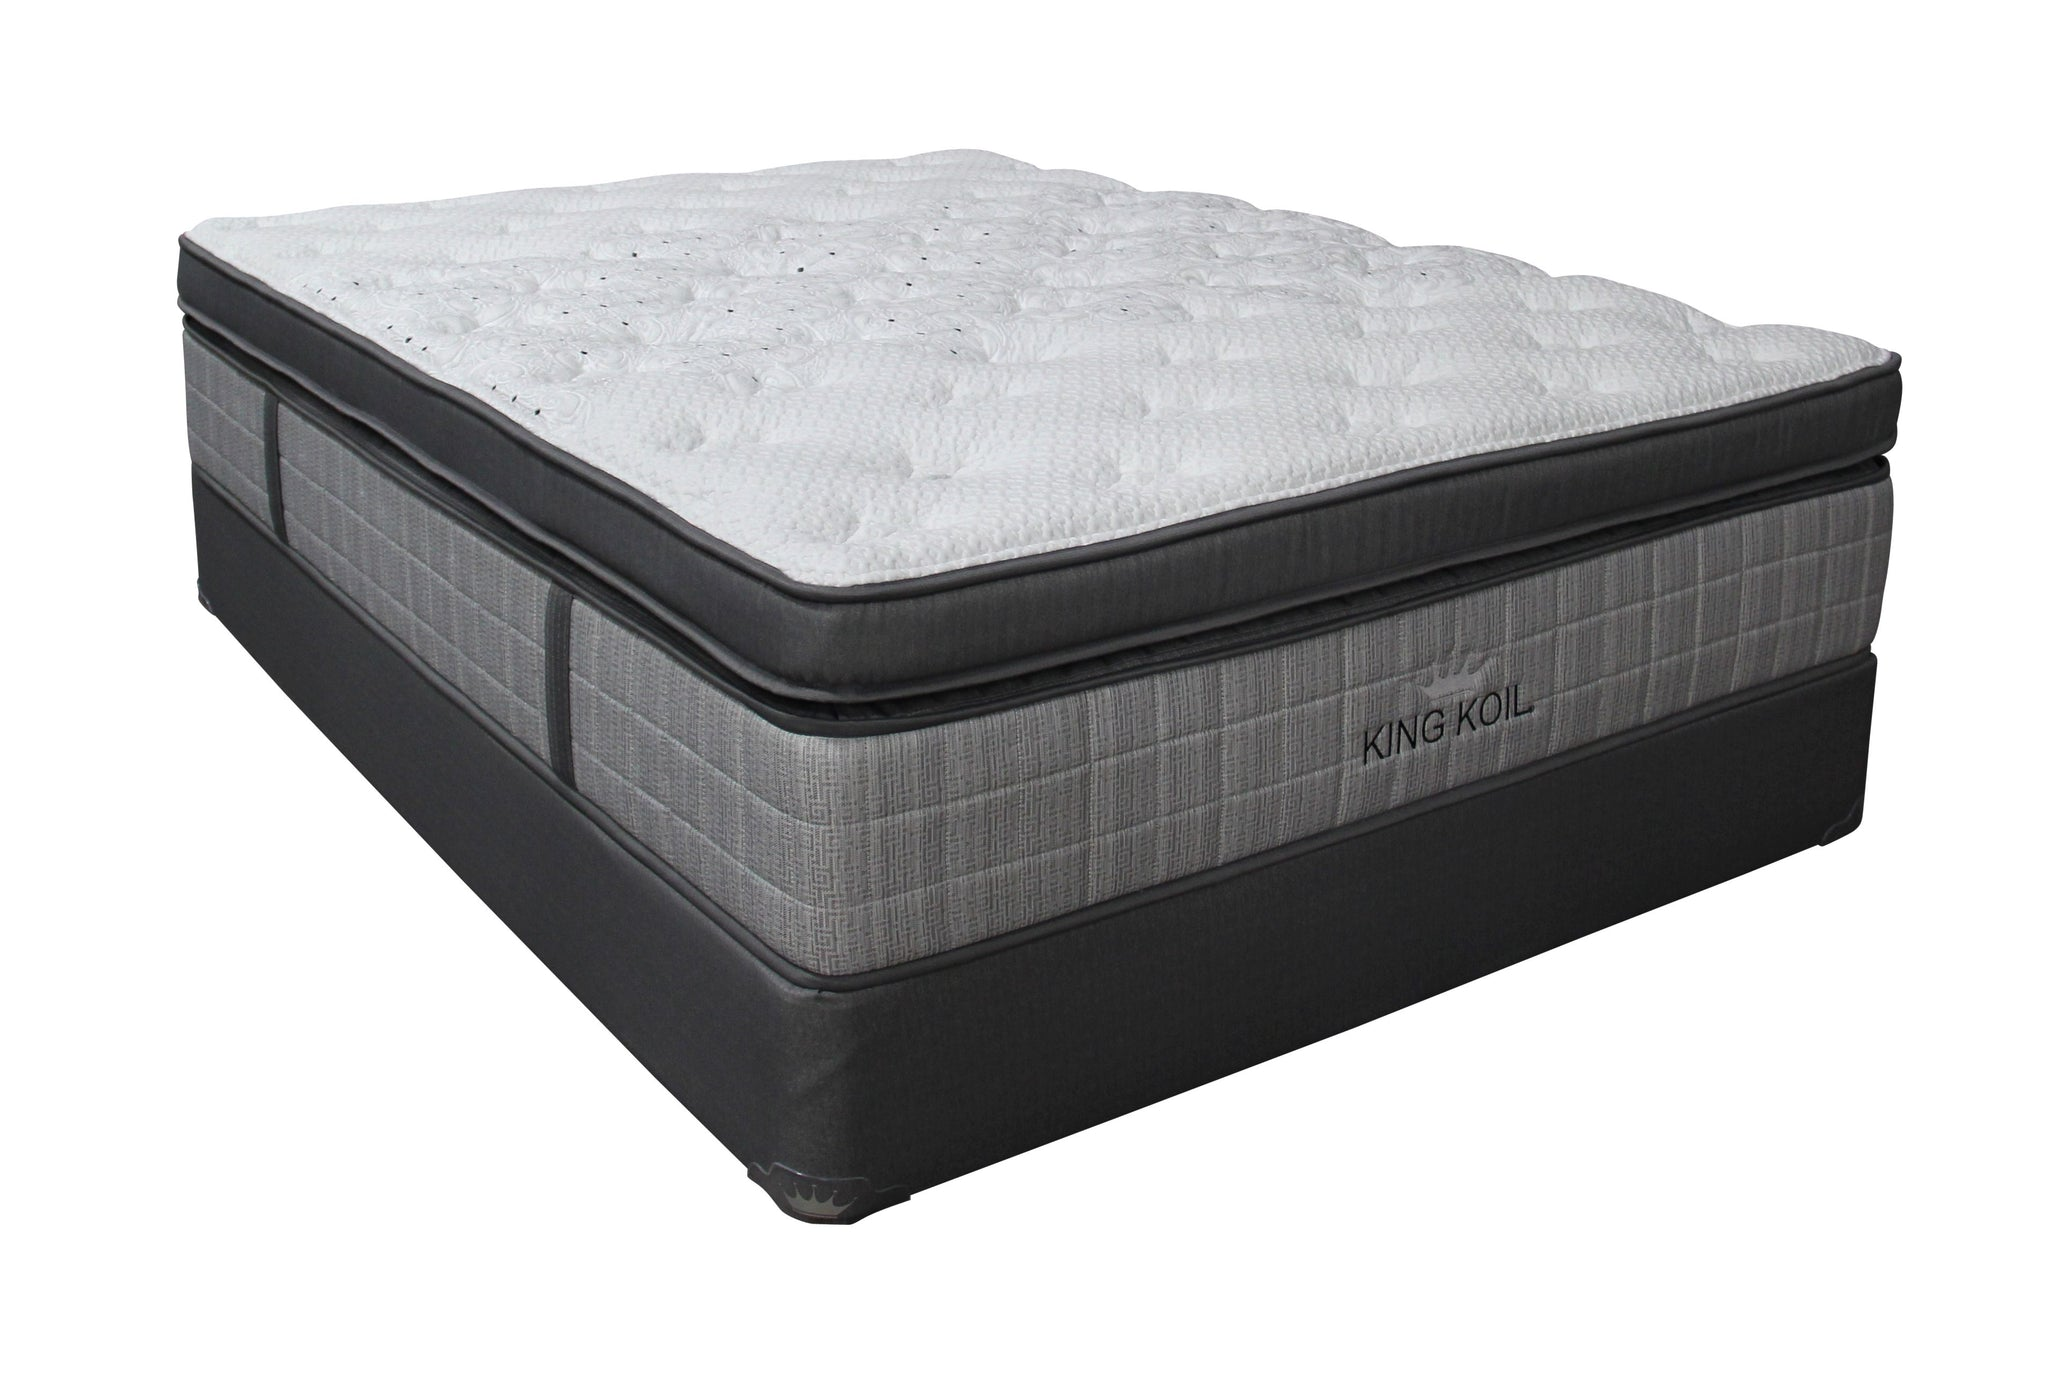 slumber walmart com reviews spring dream multiple topper mattress pillow product sizes top